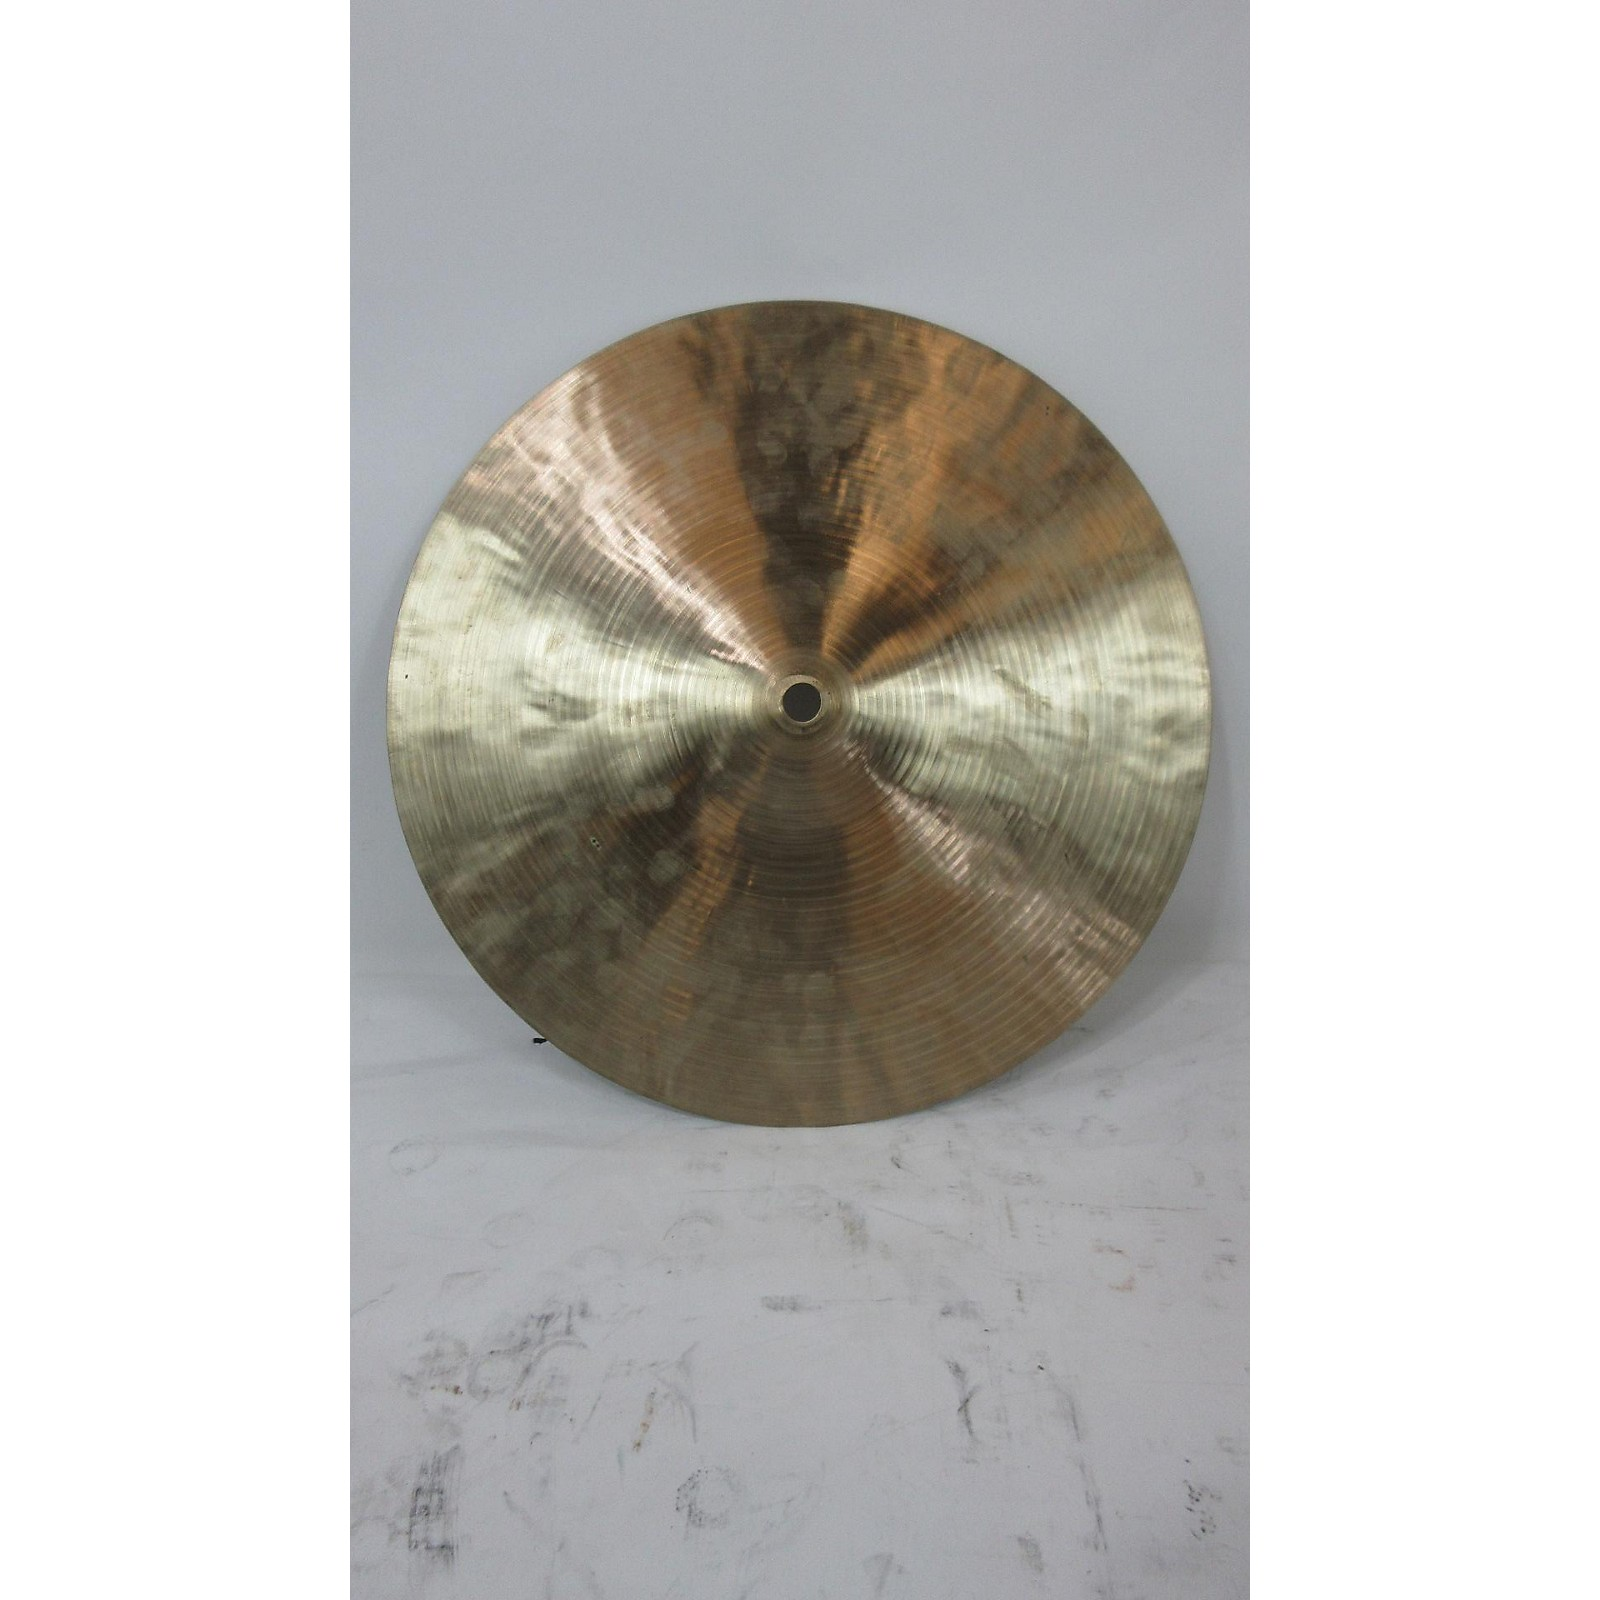 Miscellaneous 13in Hi Hat Bottom Cymbal